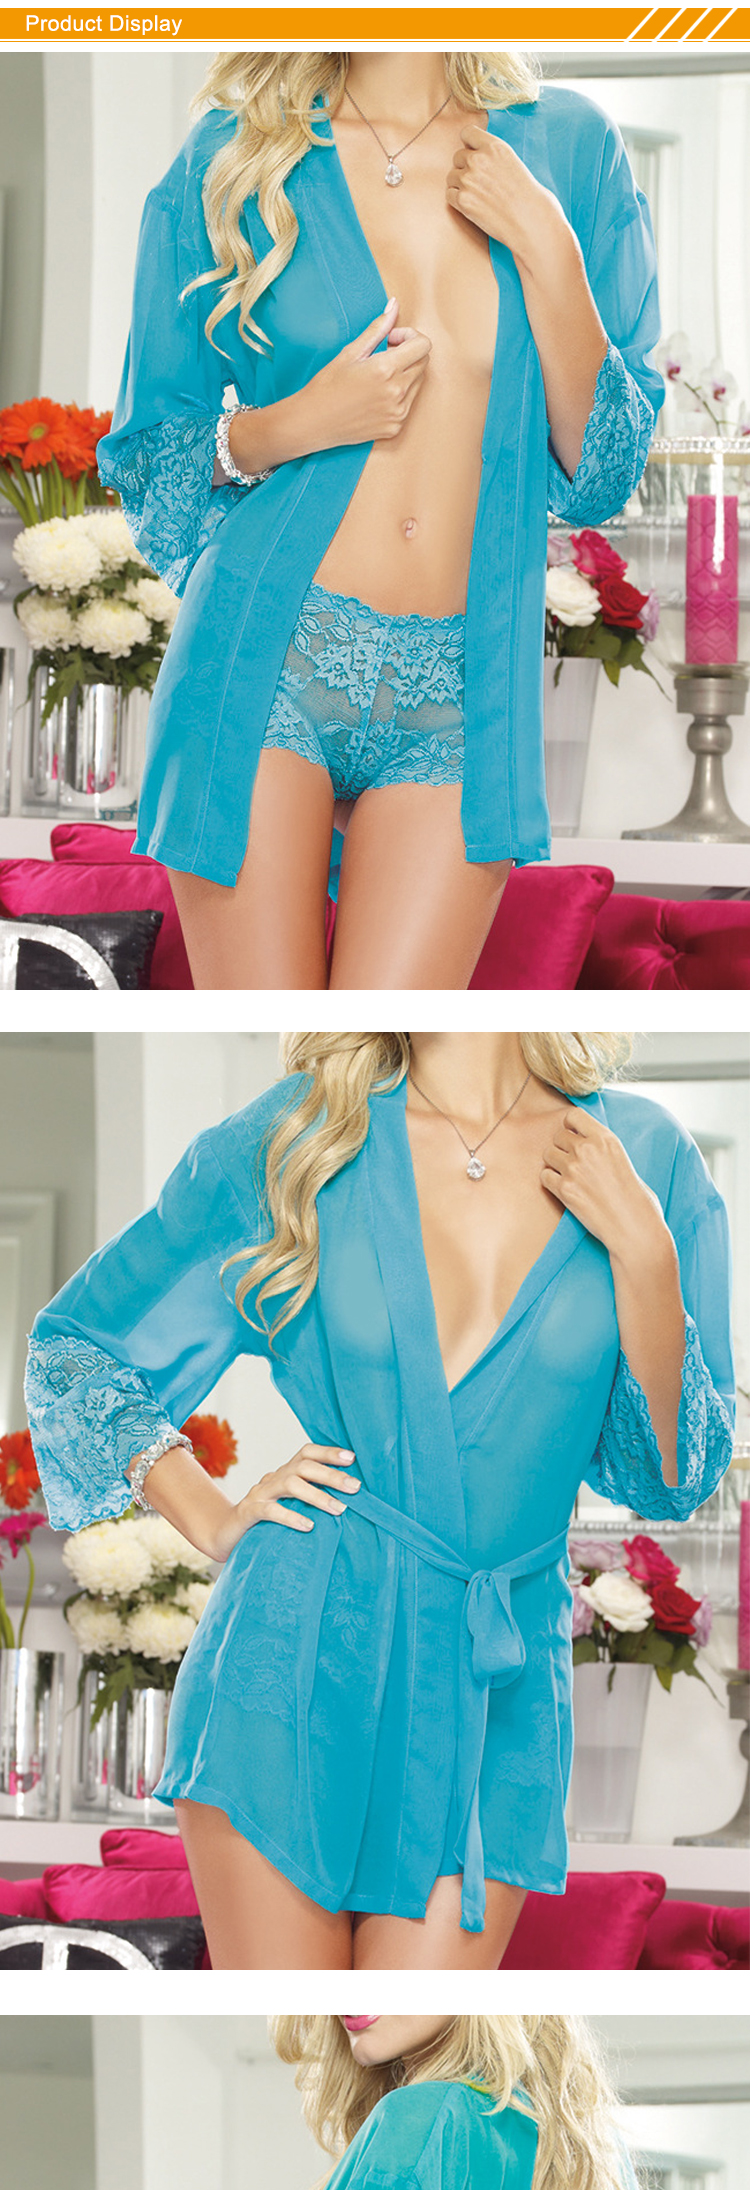 HSZ 3105 European and American sexy pajamas ladies nightgown suit sexy bathrobe